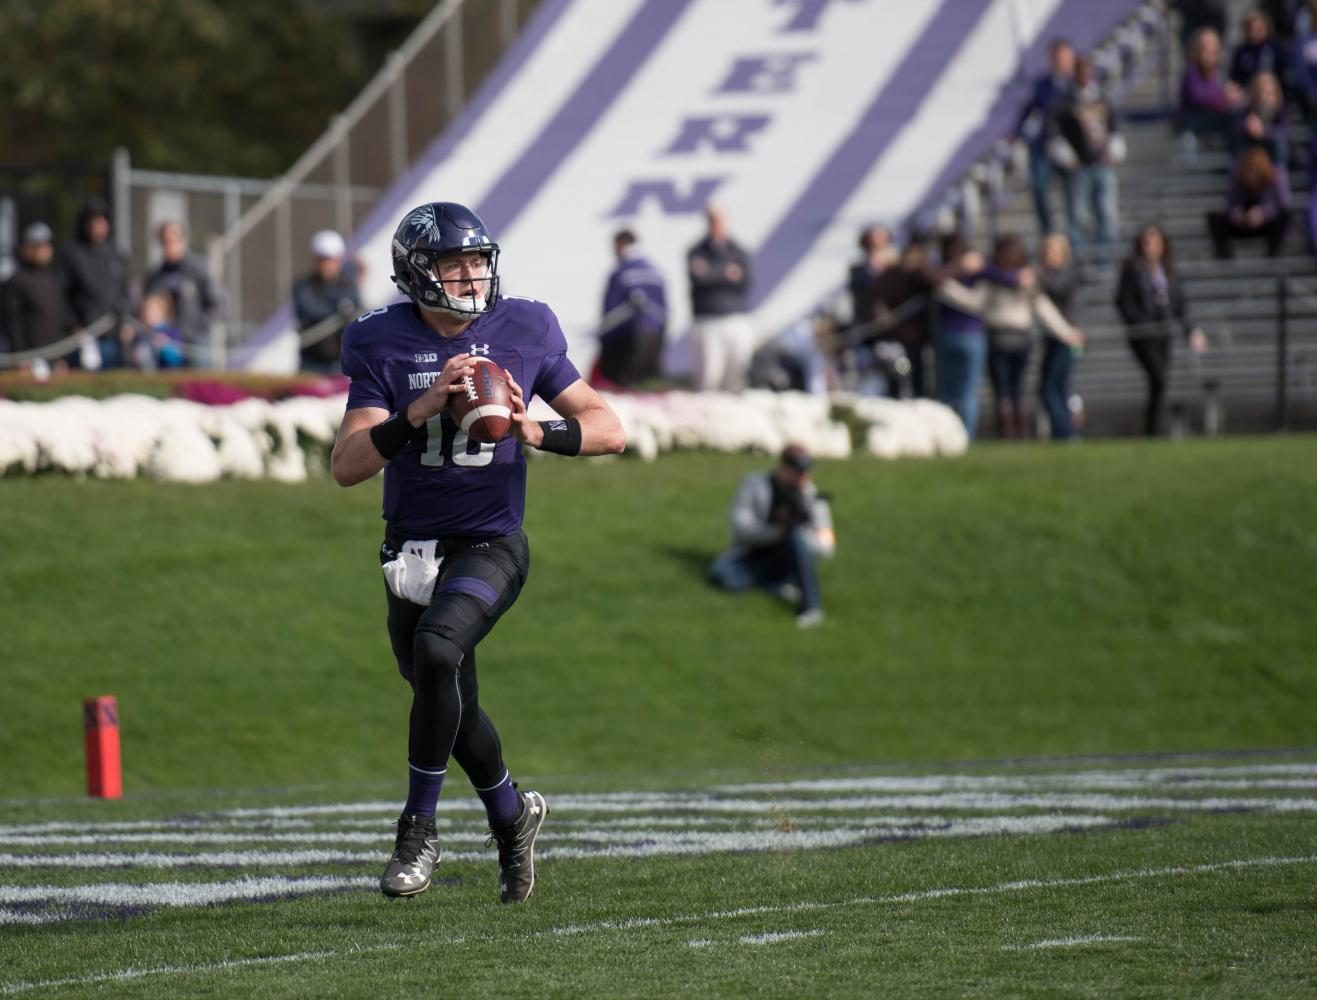 The Football Podcast: Another Northwestern game, another overtime win